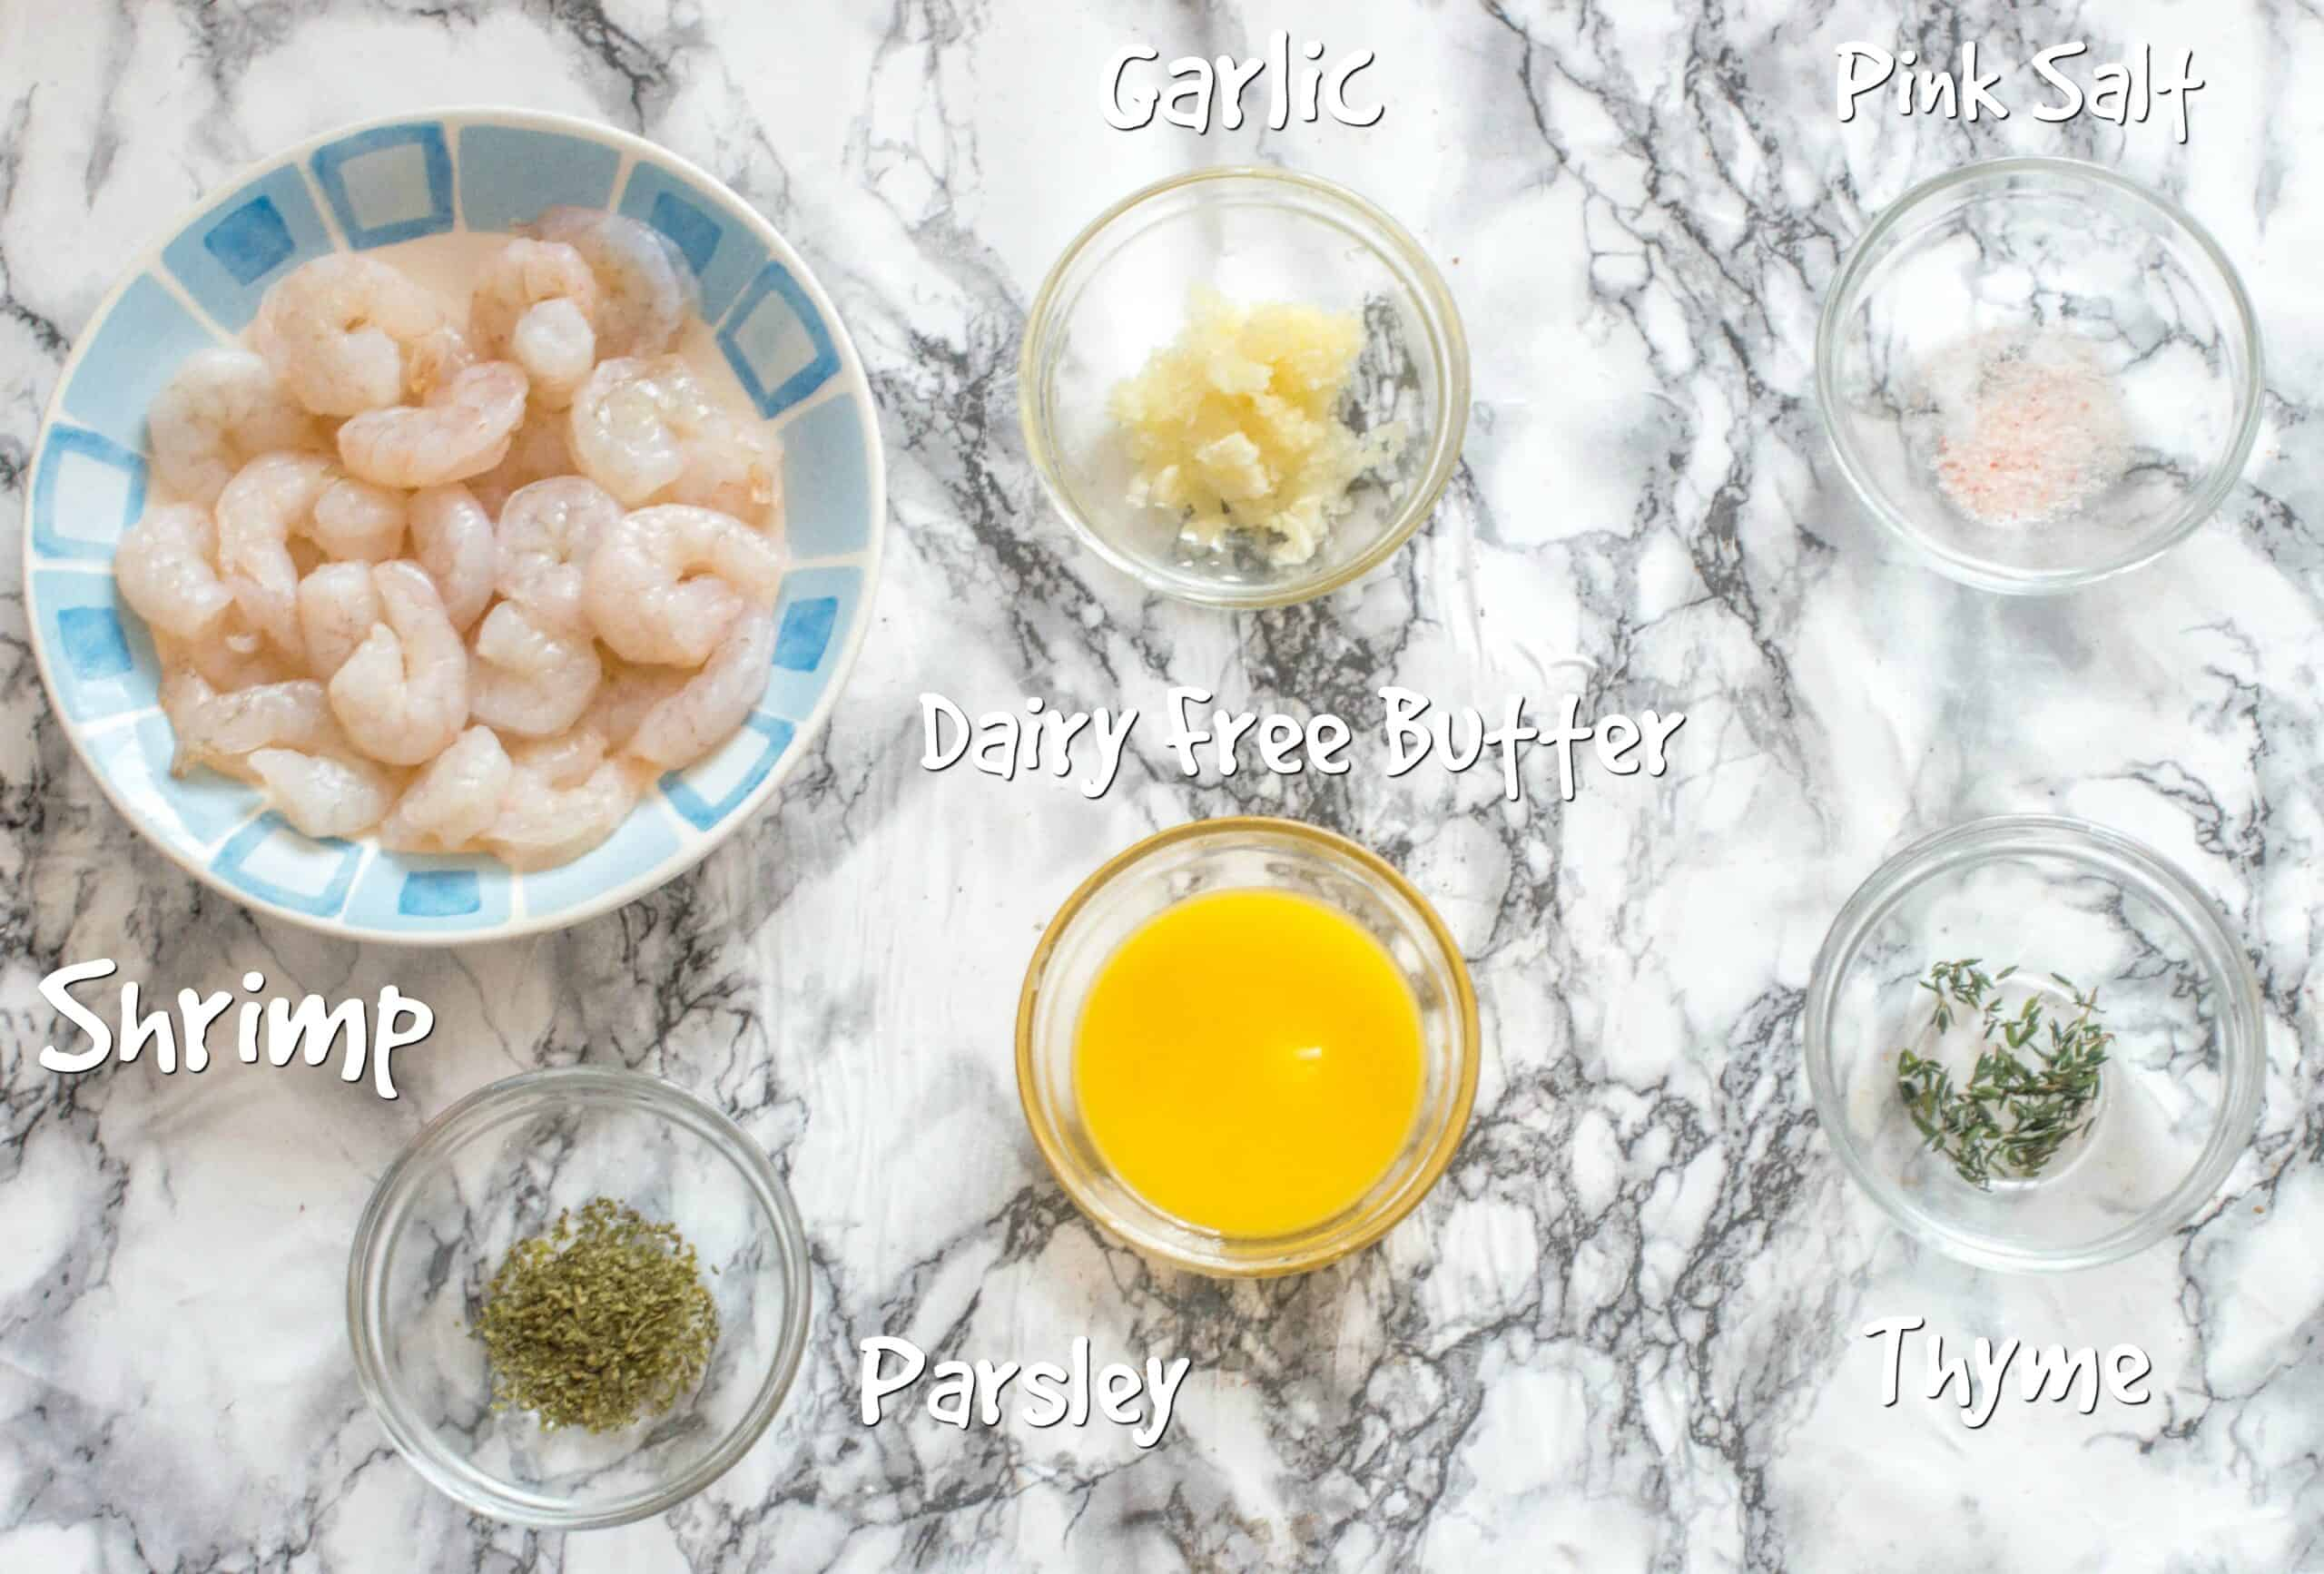 Ingredients for the pan fried garlic butter shrimp